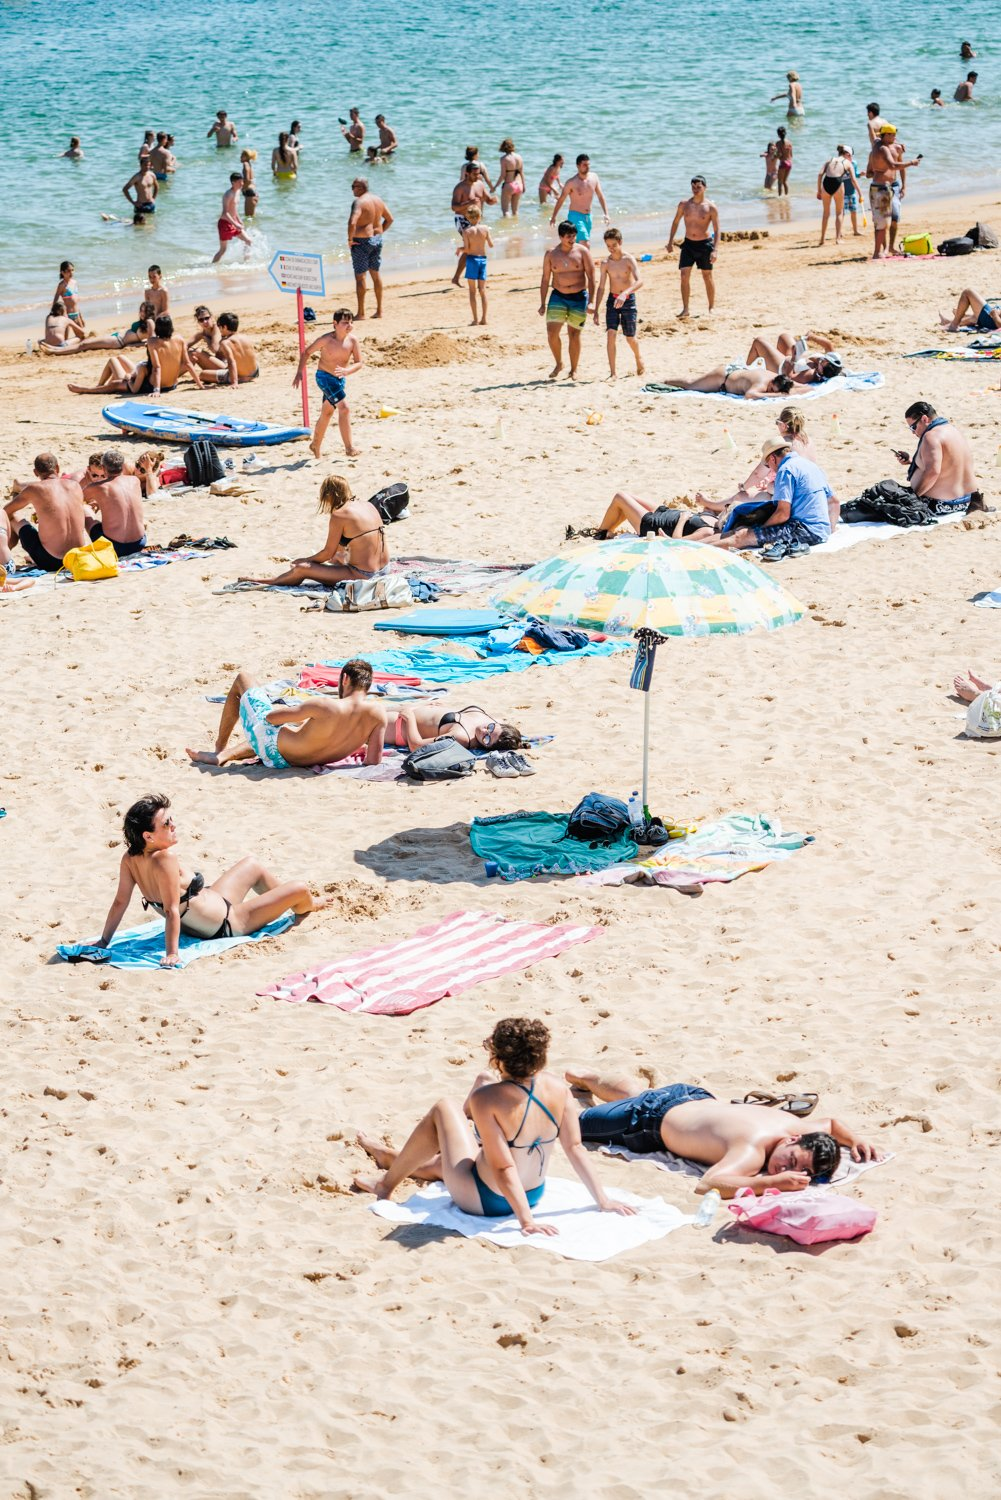 People tanning, swimmers and umbrellas at a beach in Cascais Portugal